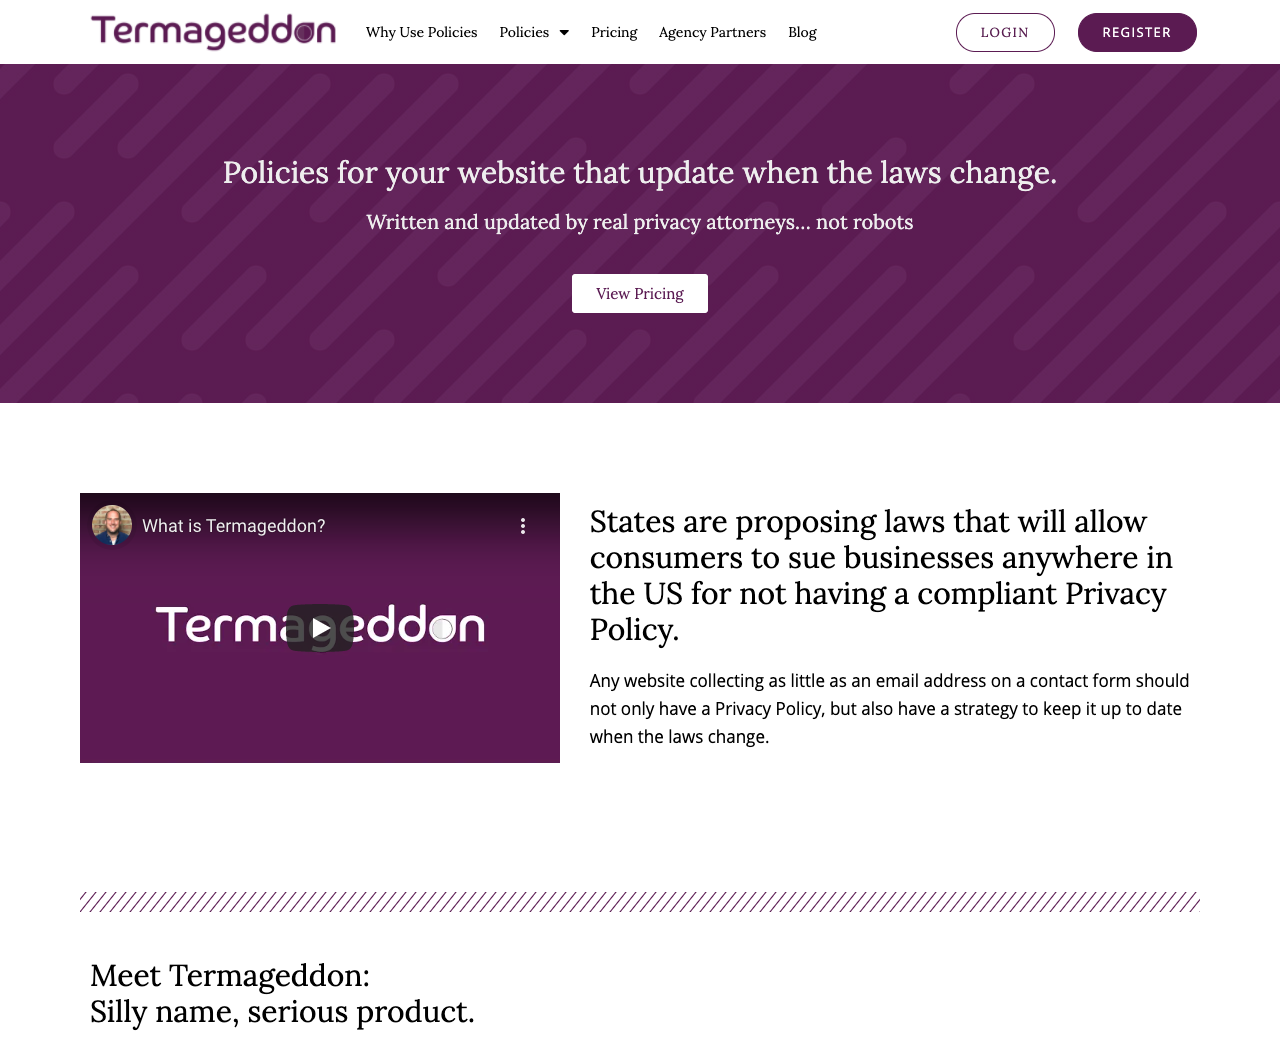 the homepage of Termageddon a policy generator service for privacy and terms of use policies.